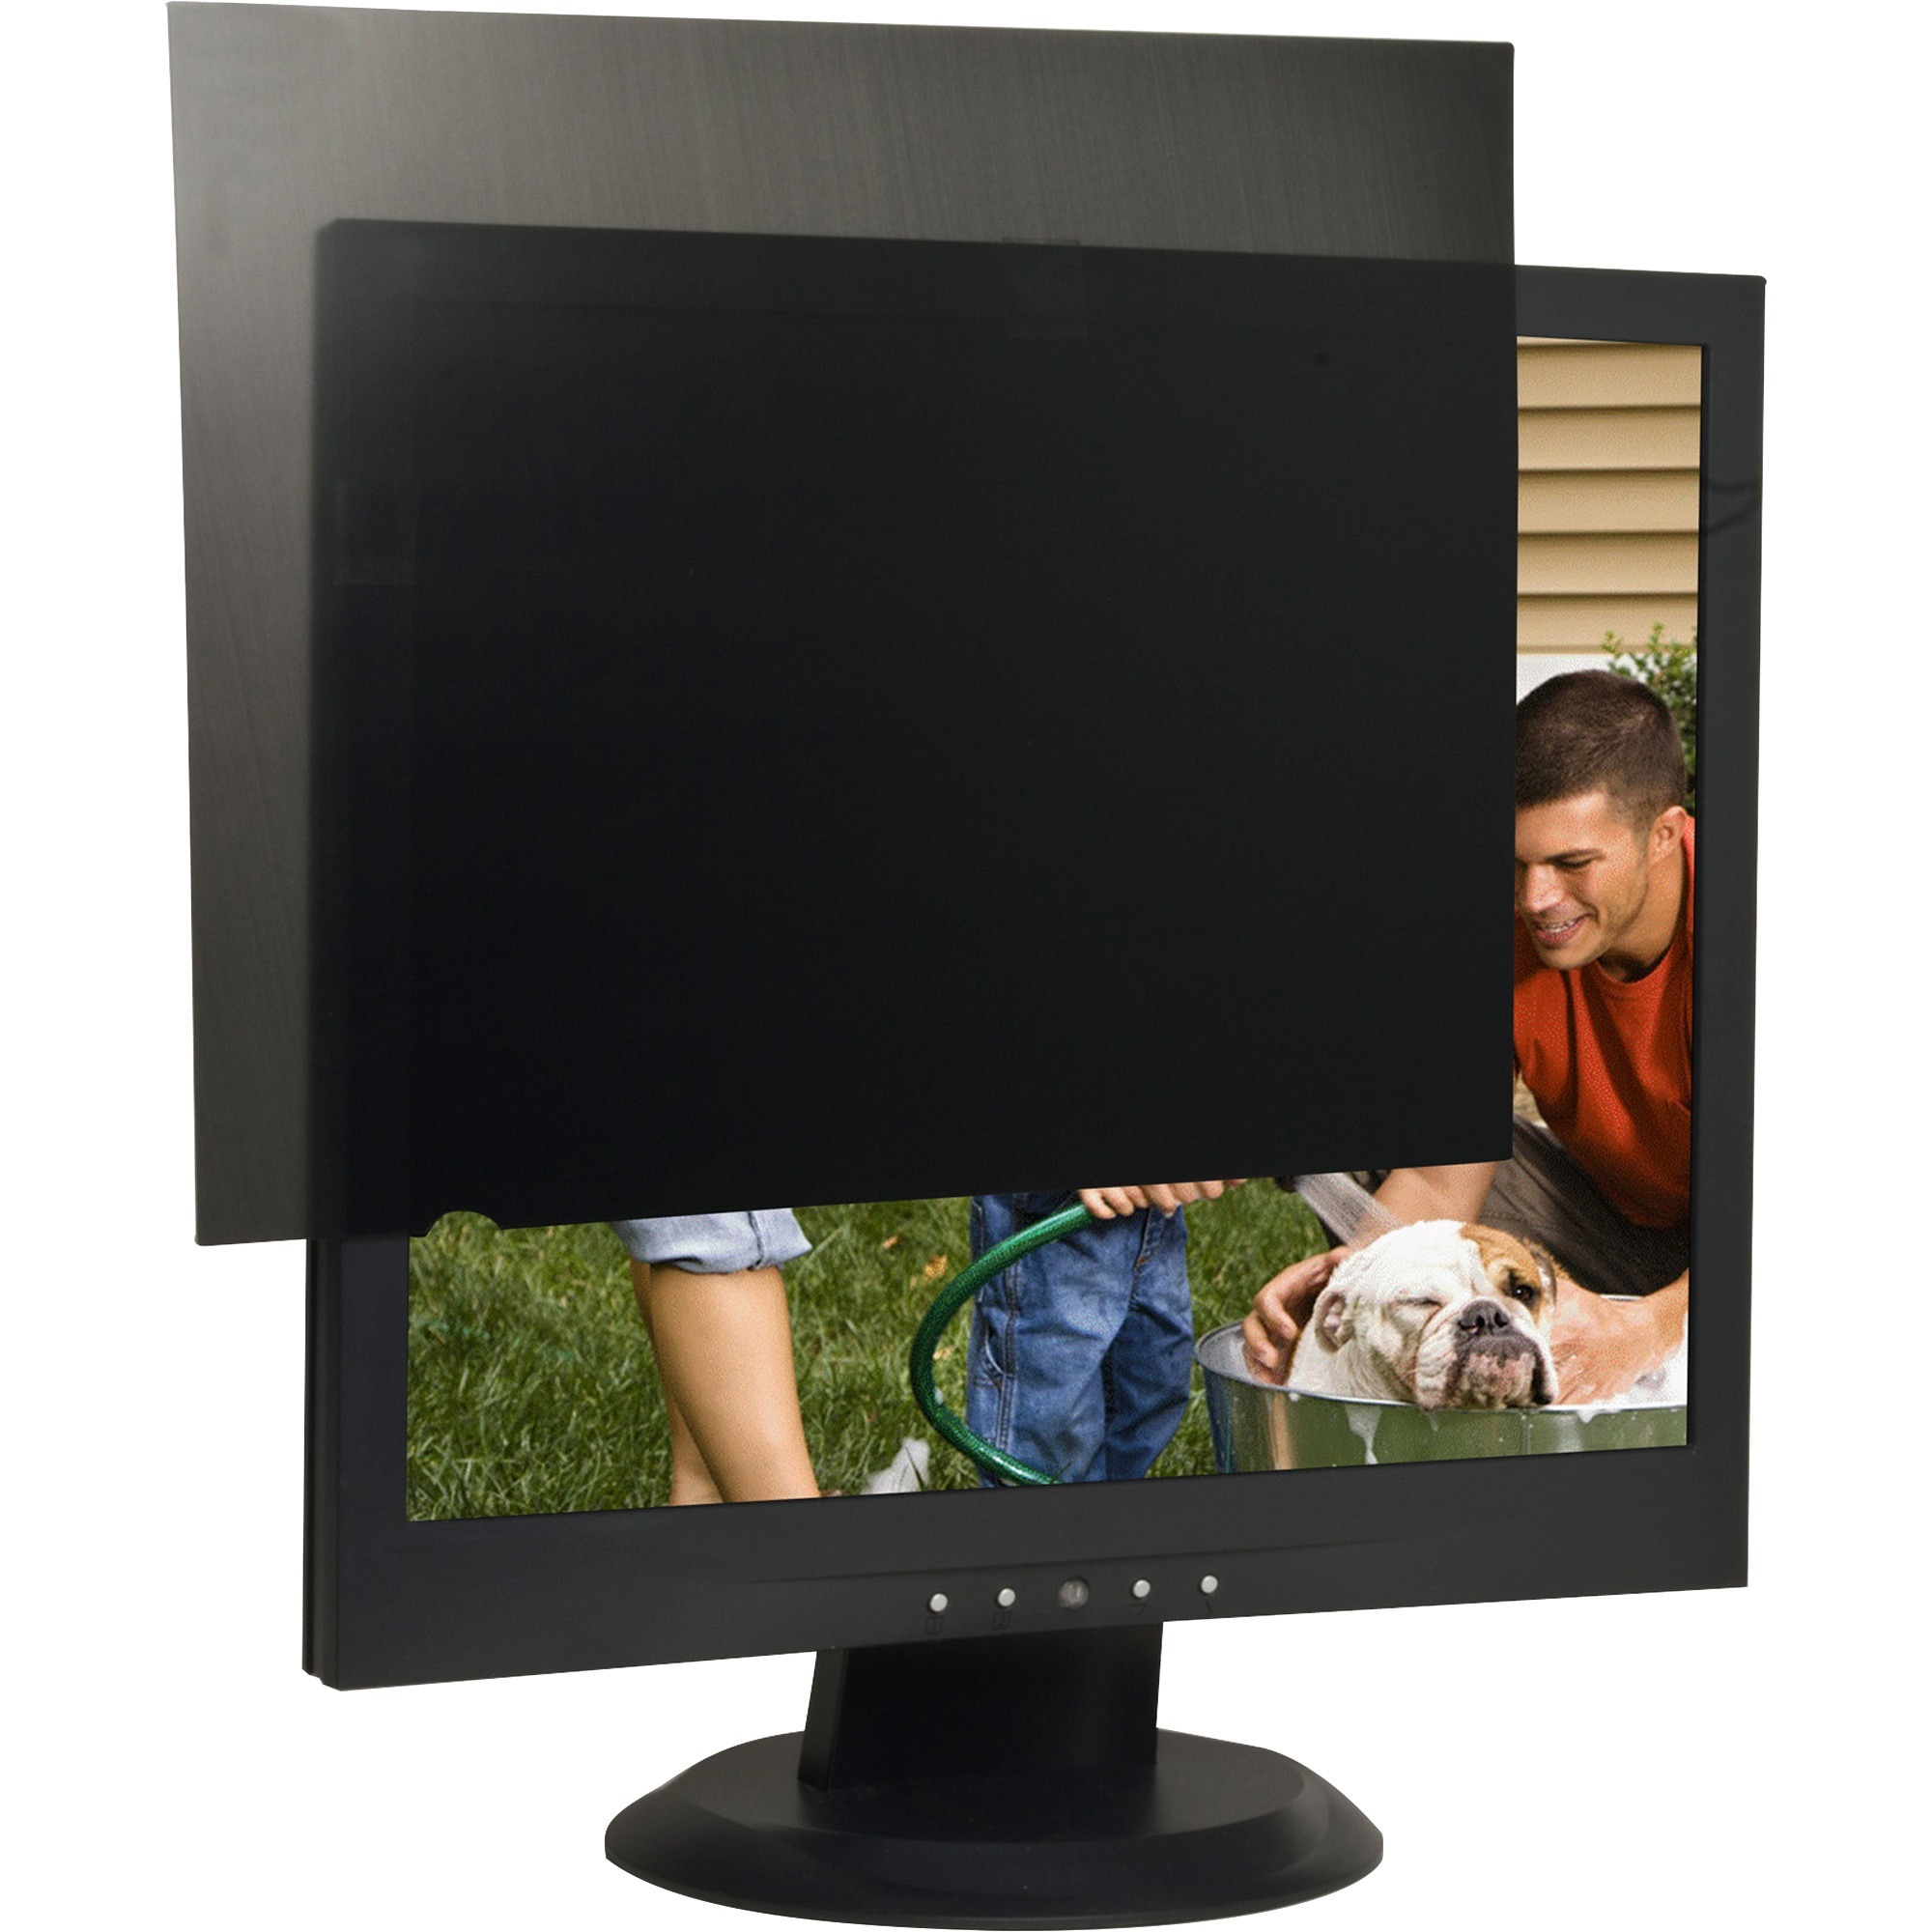 "Compucessory, CCS20665, 17"" LCD Monitor Privacy Filter, 1, Black"